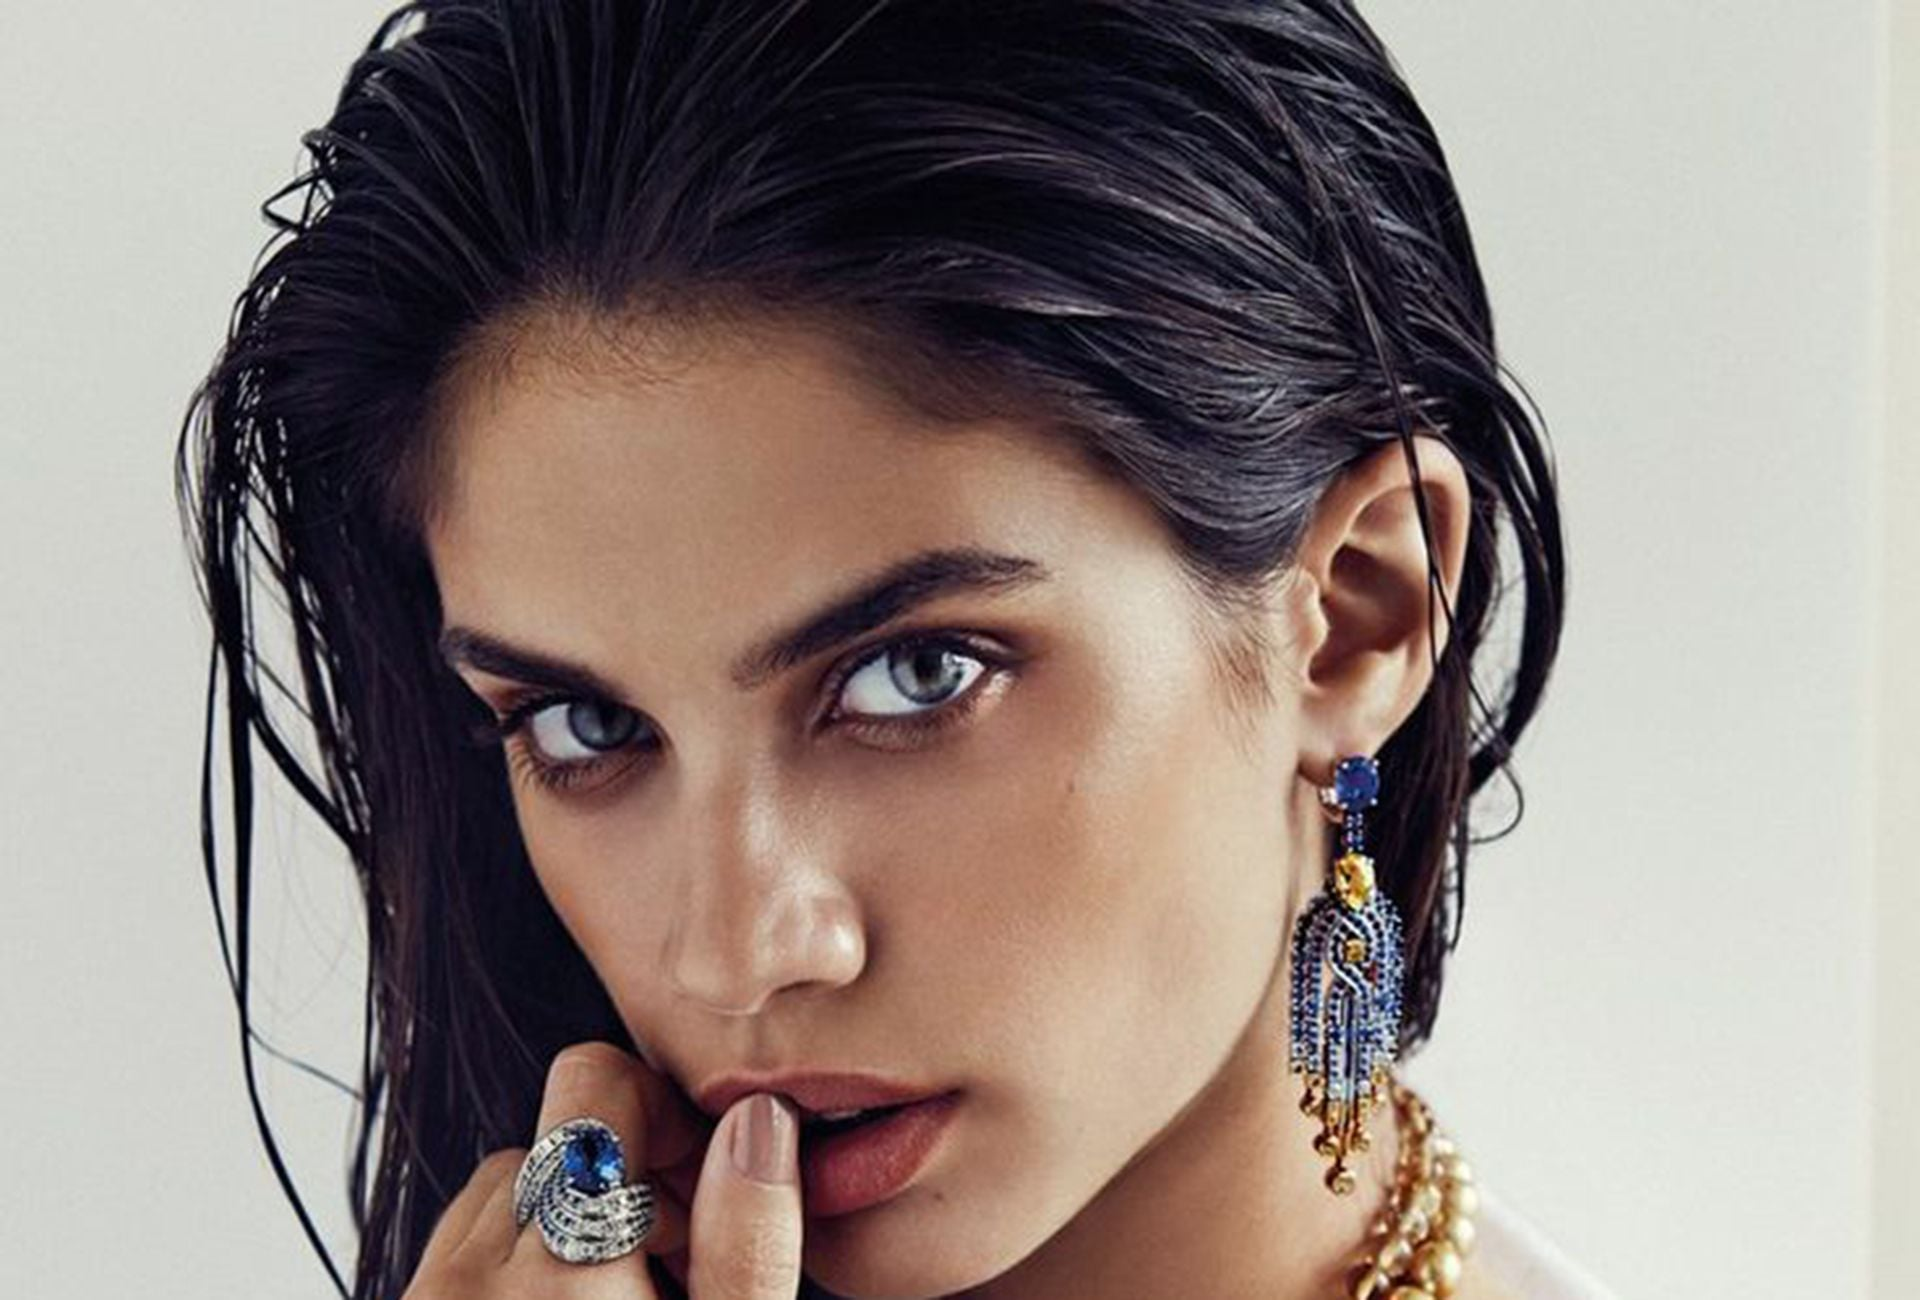 earrings by Sara Sampaio pictures